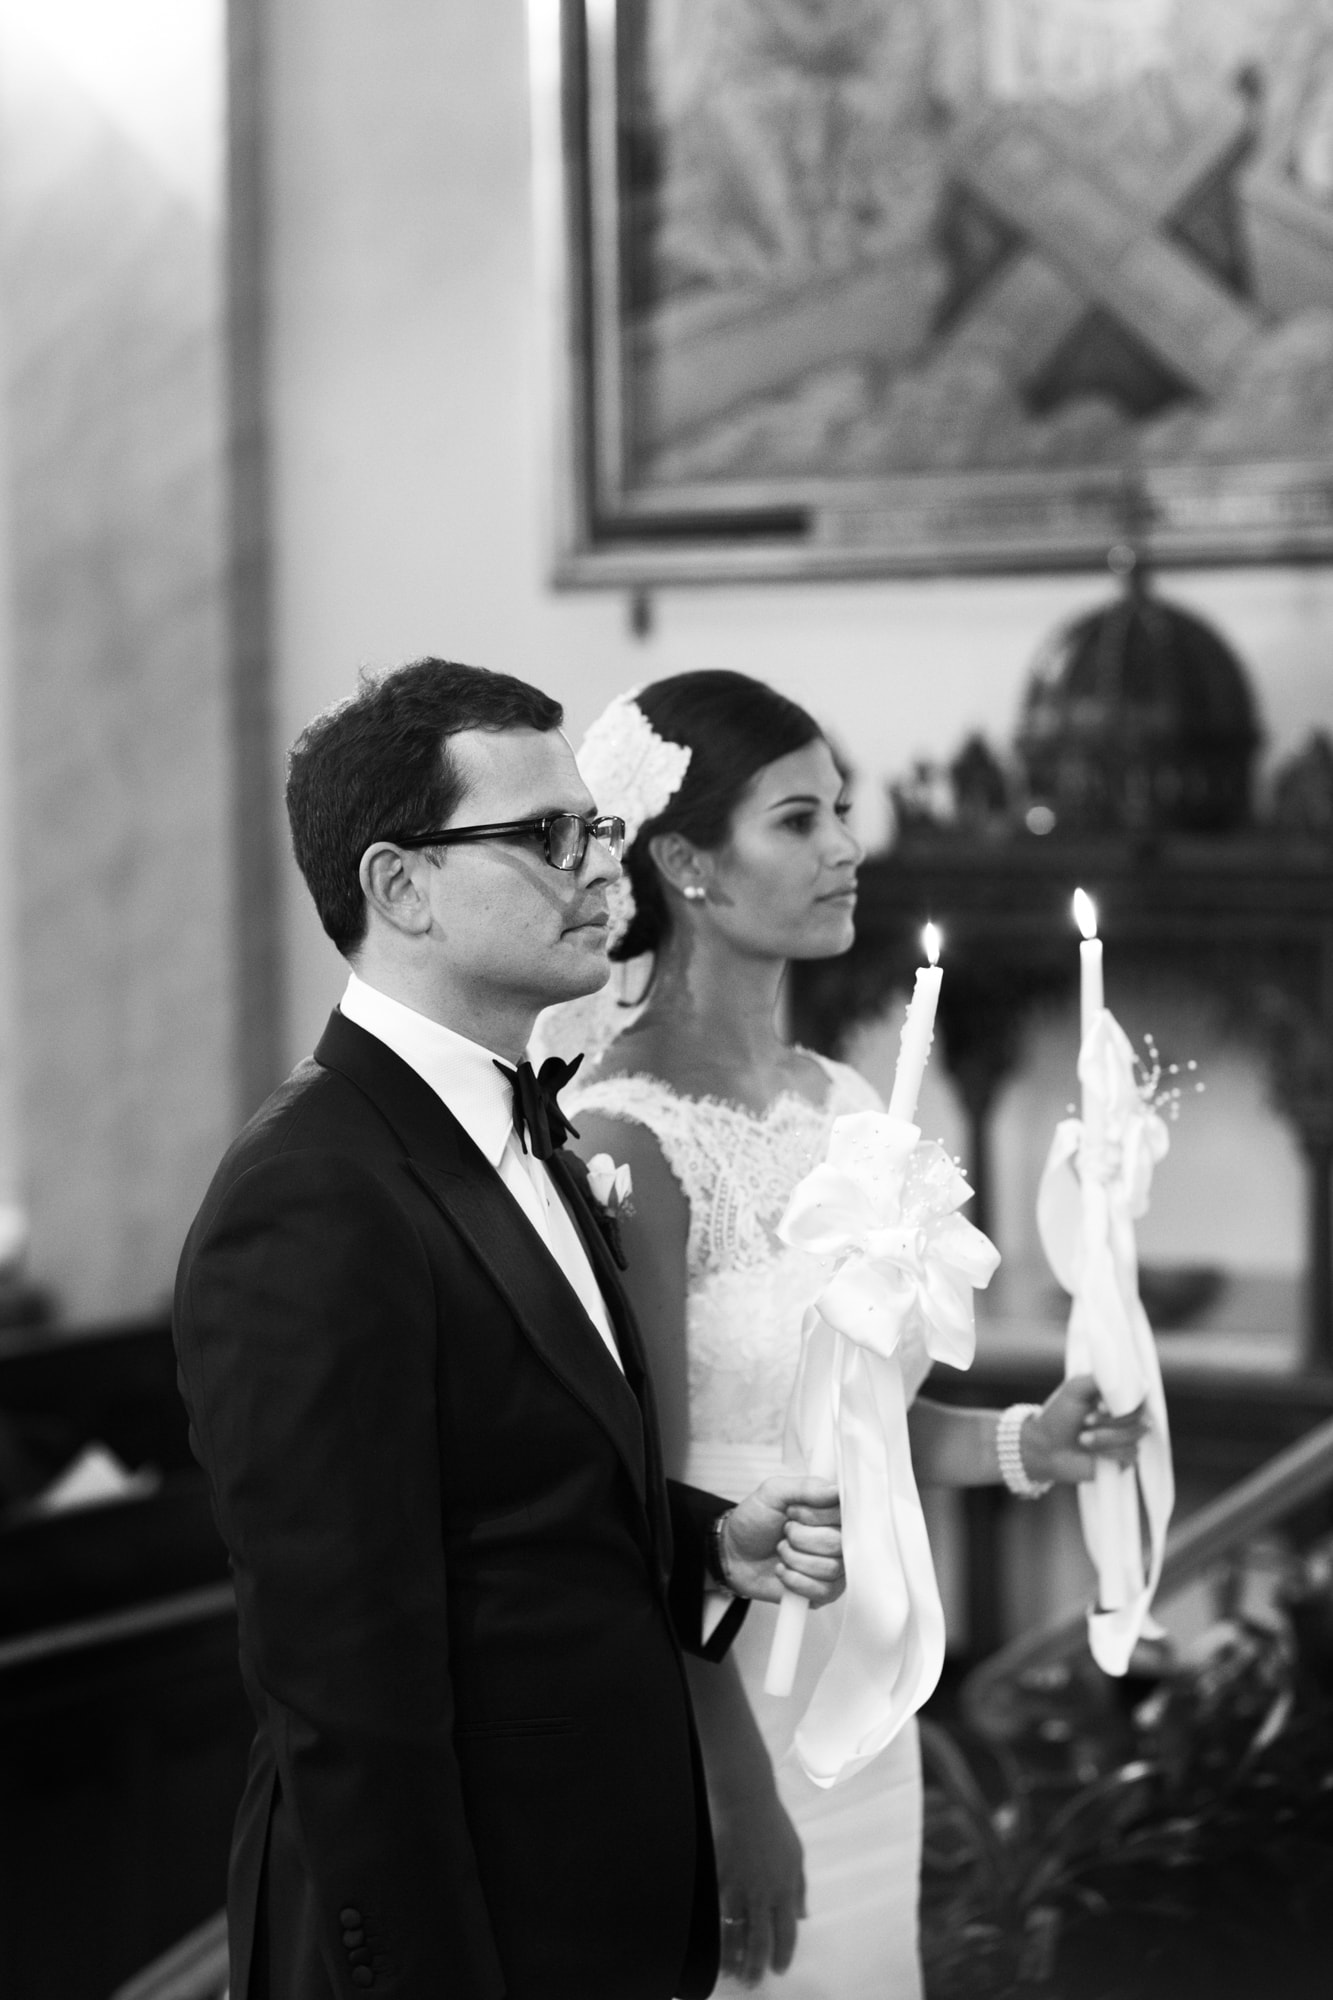 Candle light during Greek wedding ceremony